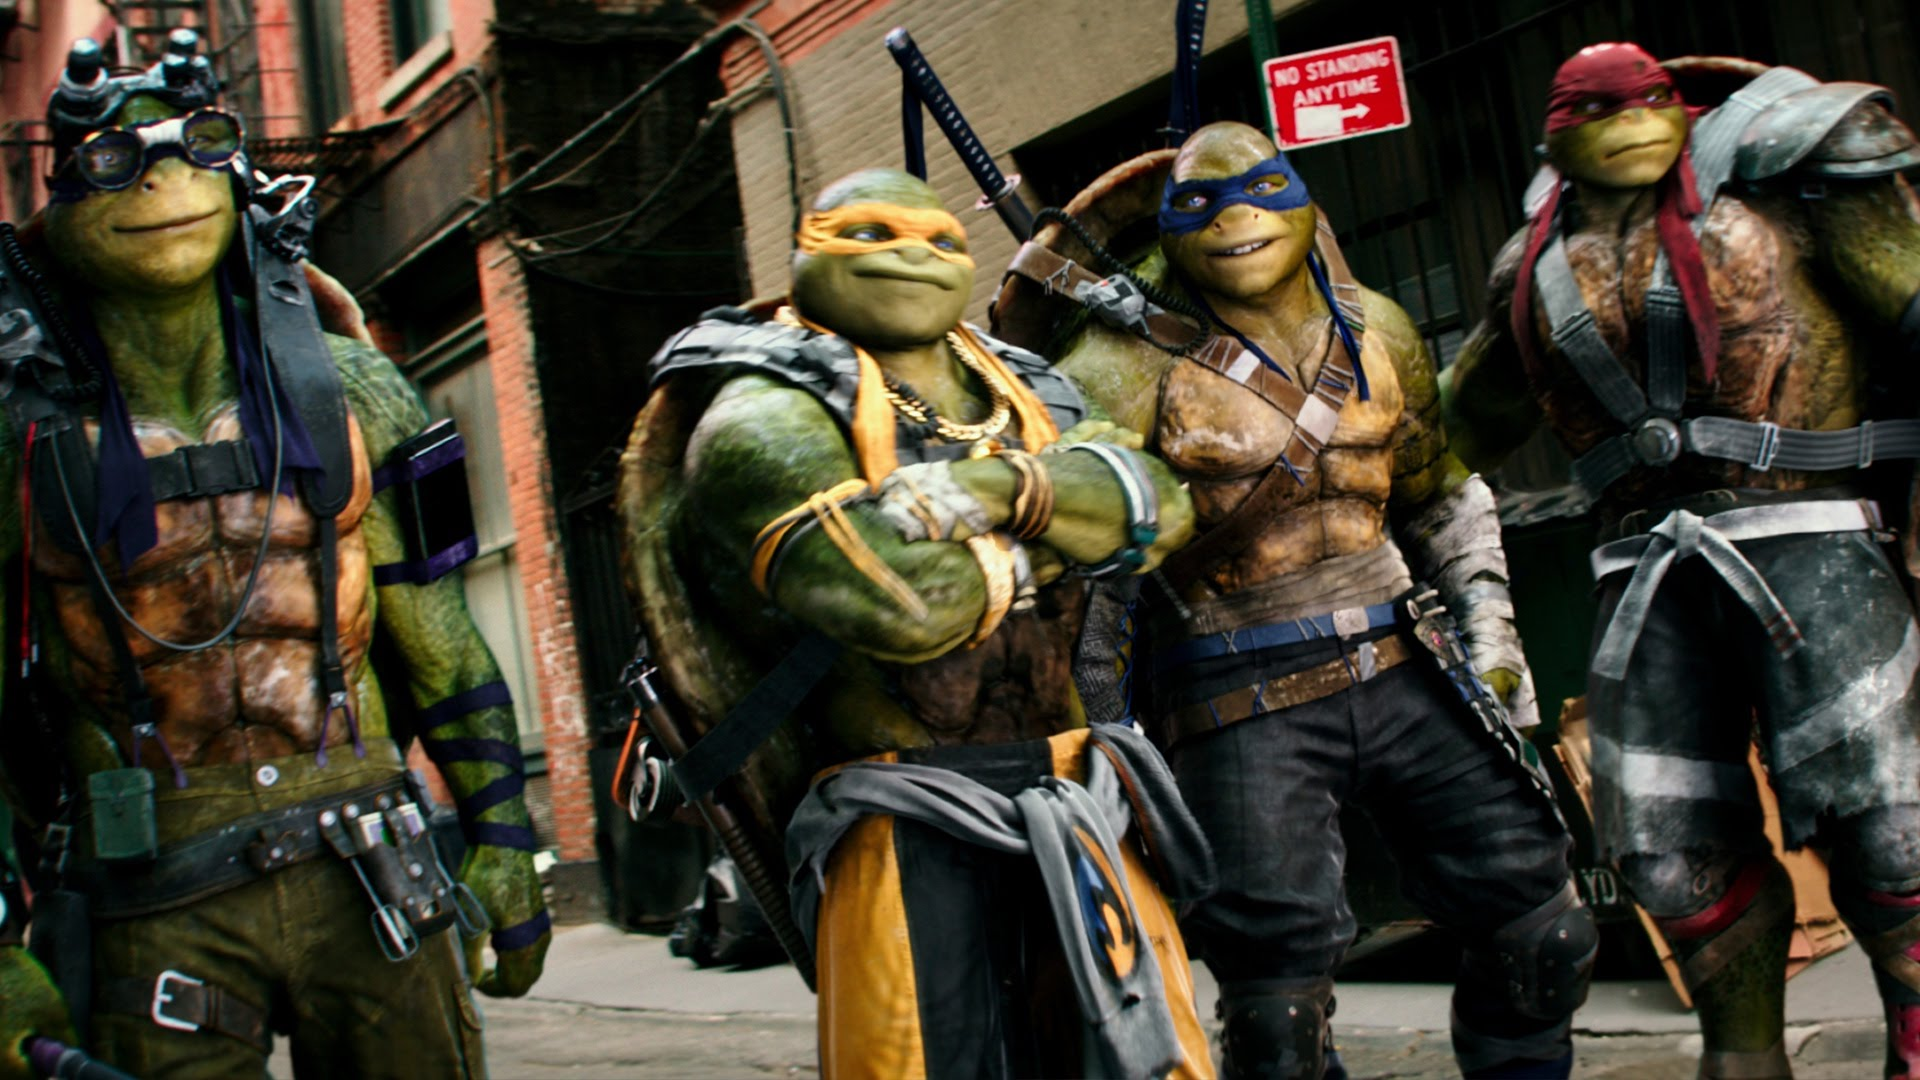 Teenage Mutant Ninja Turtles: Out of the Shadows | Trailer #1 | Paramount Pictures UK